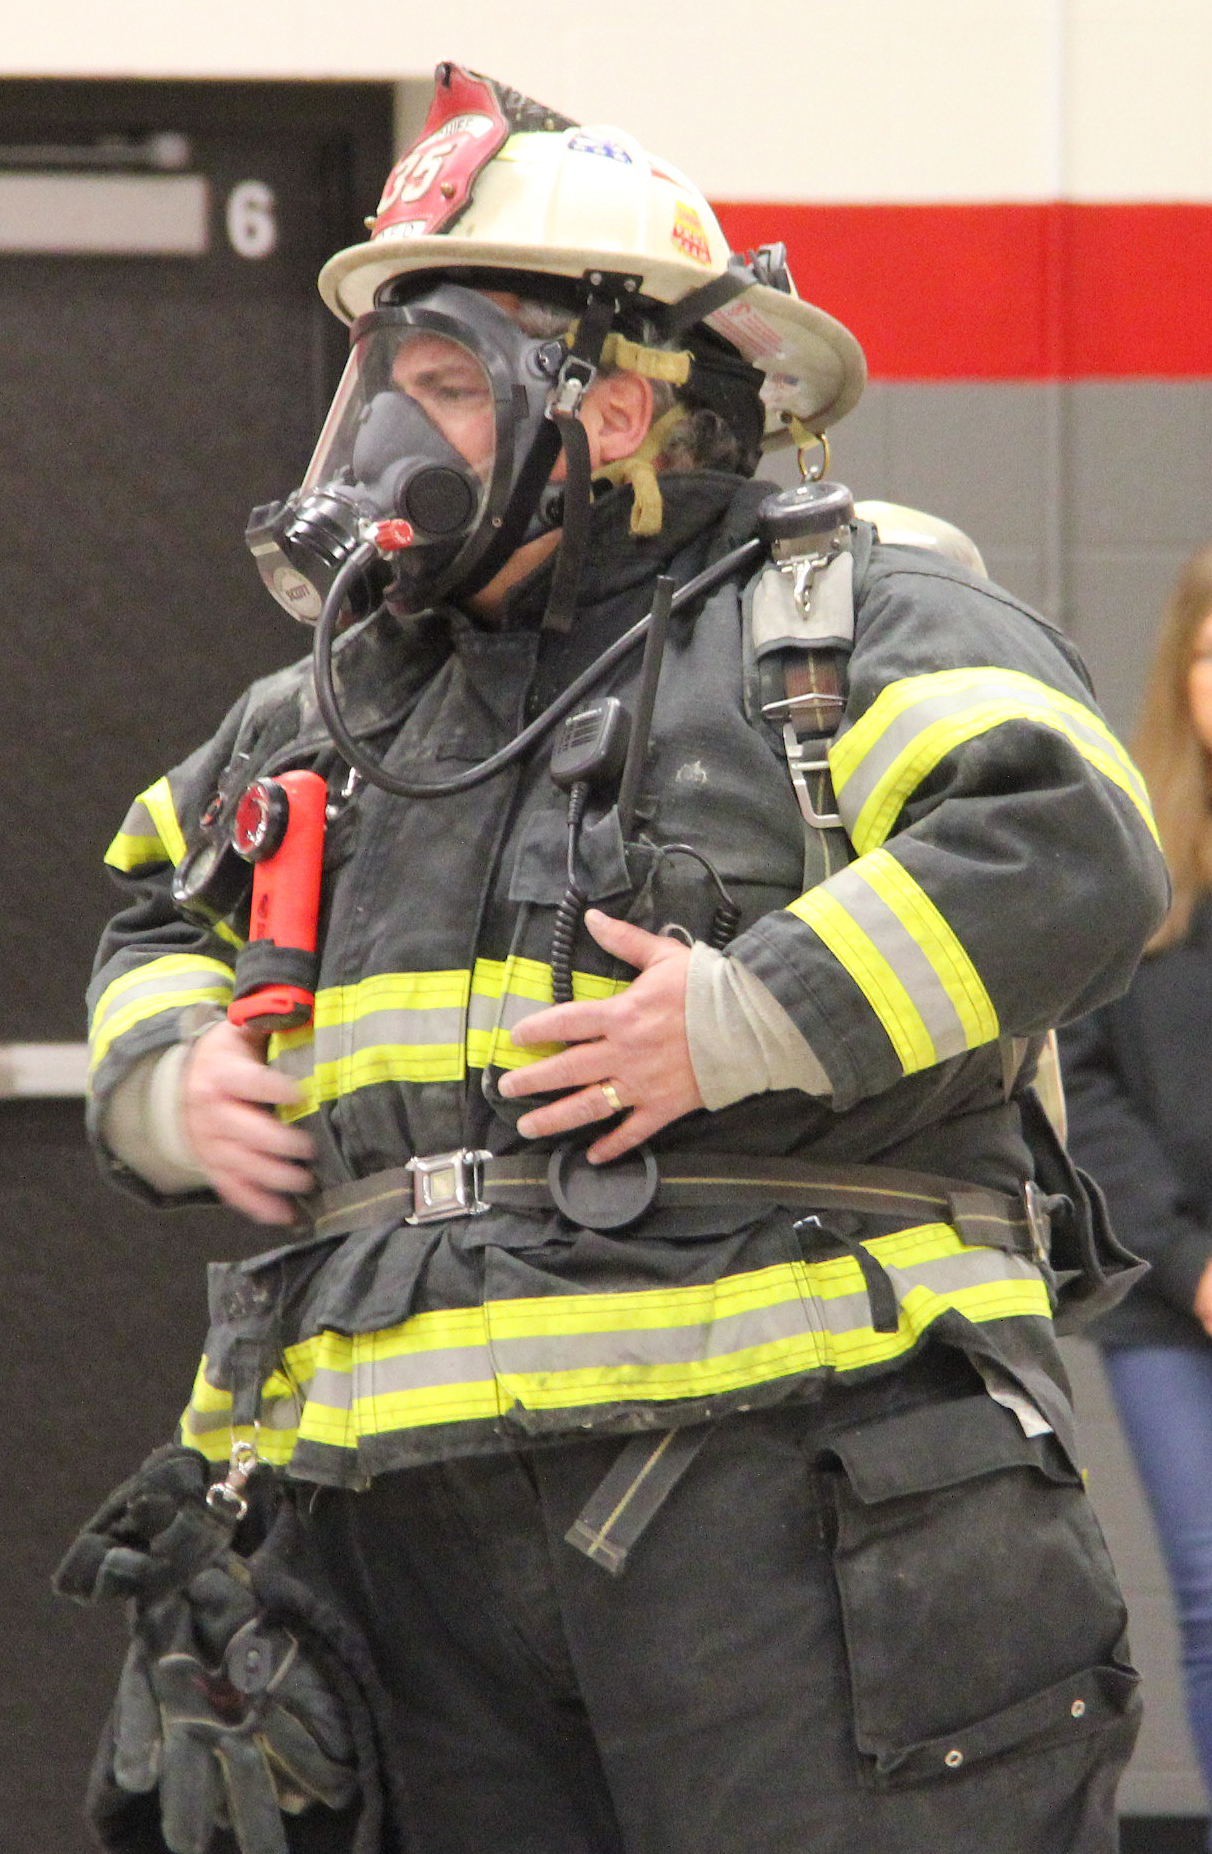 upclose of fire chief wearing gear